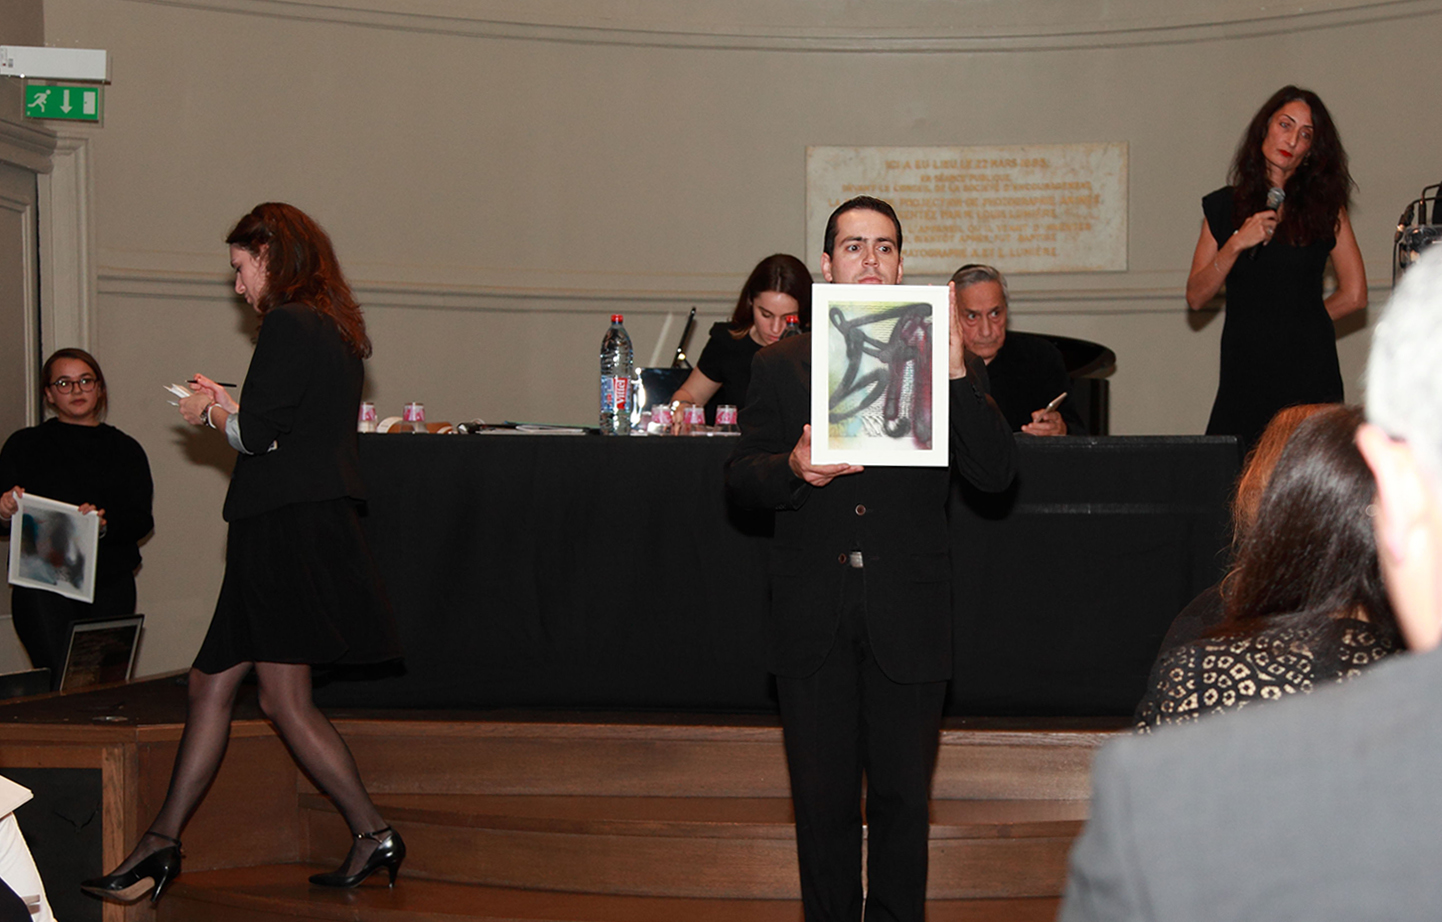 Presentation of Luke Dowd's work during the auction sale 100 YEARS - 100 ARTISTS.